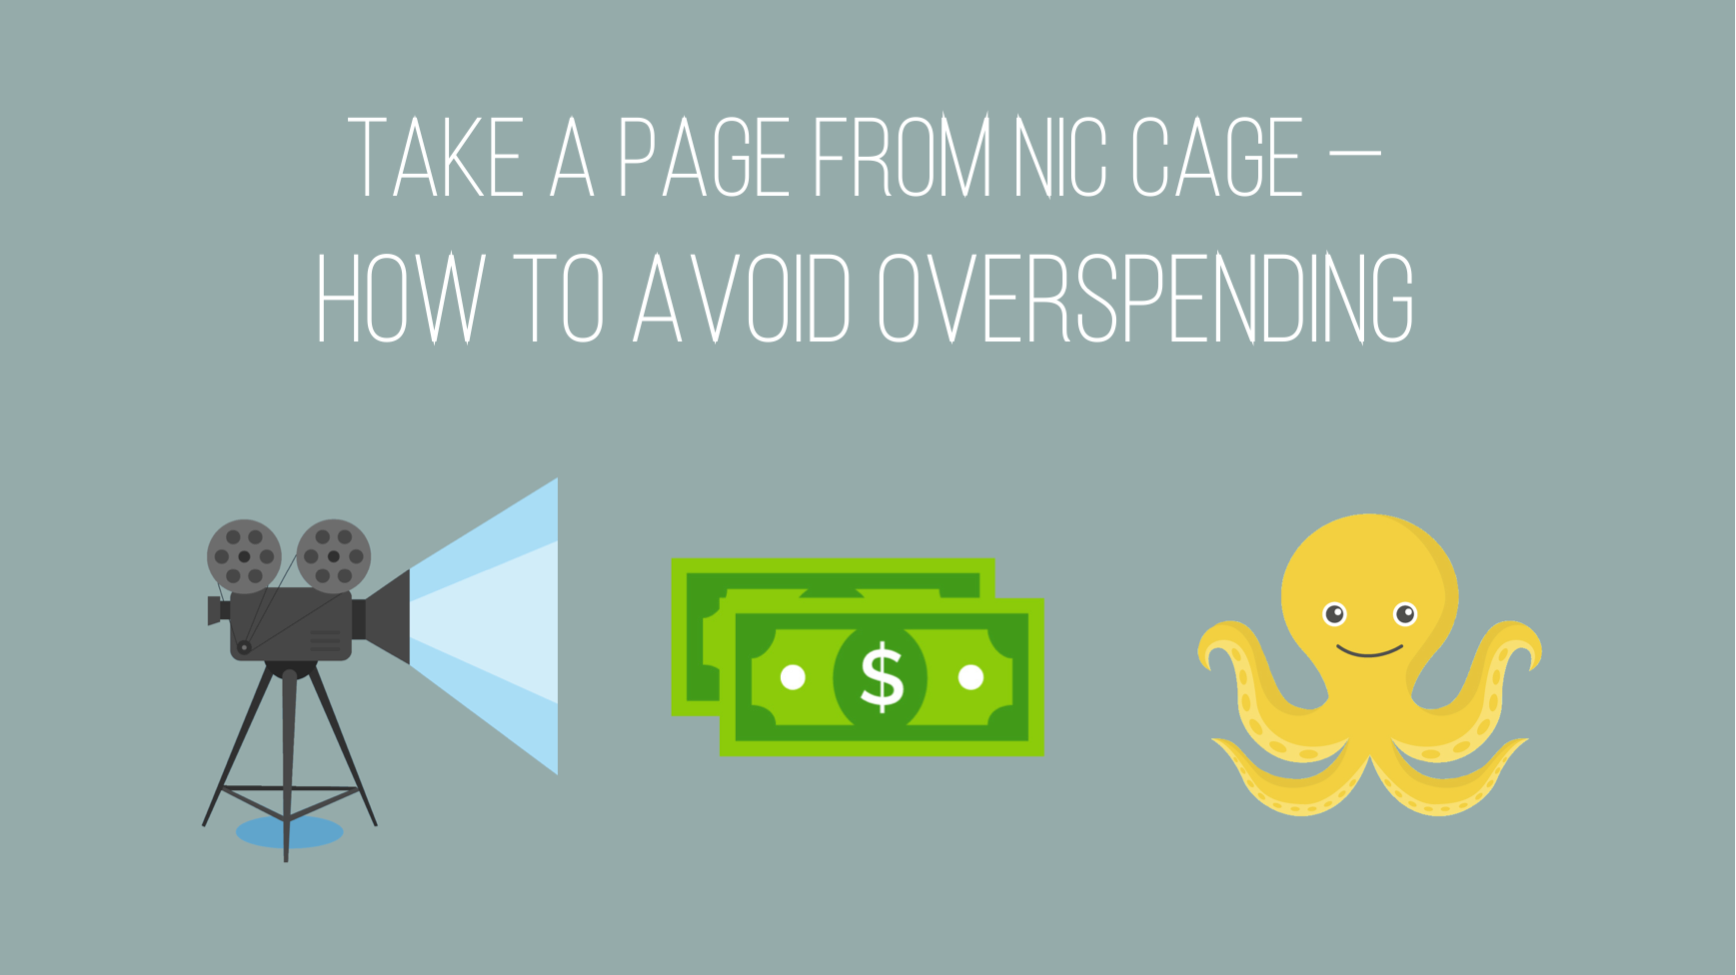 Take a page from Nic Cage: 6 foolproof ways to avoid overspending in 2018